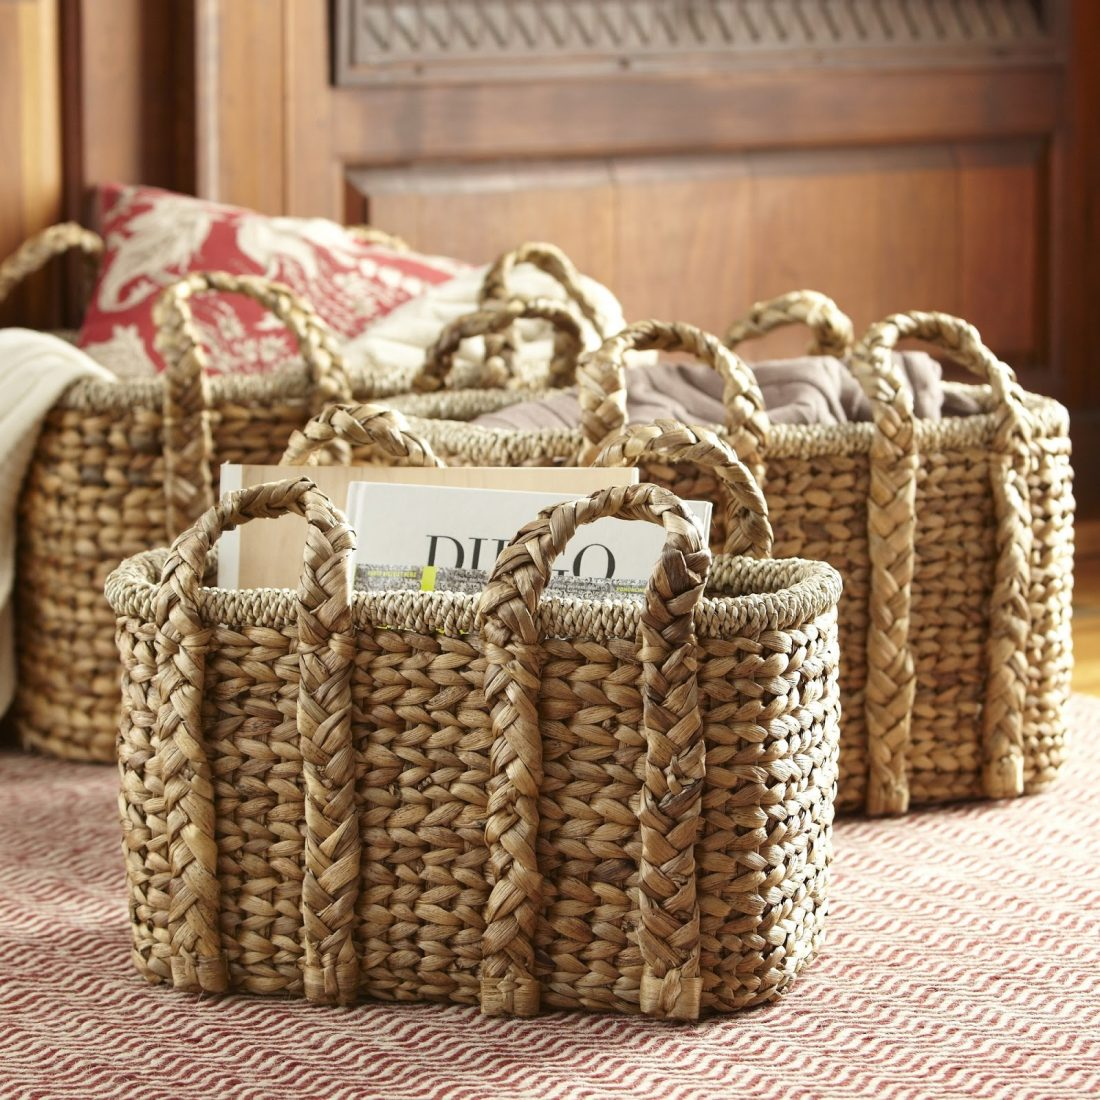 BIRCH LANE HANDLED STORAGE BASKET